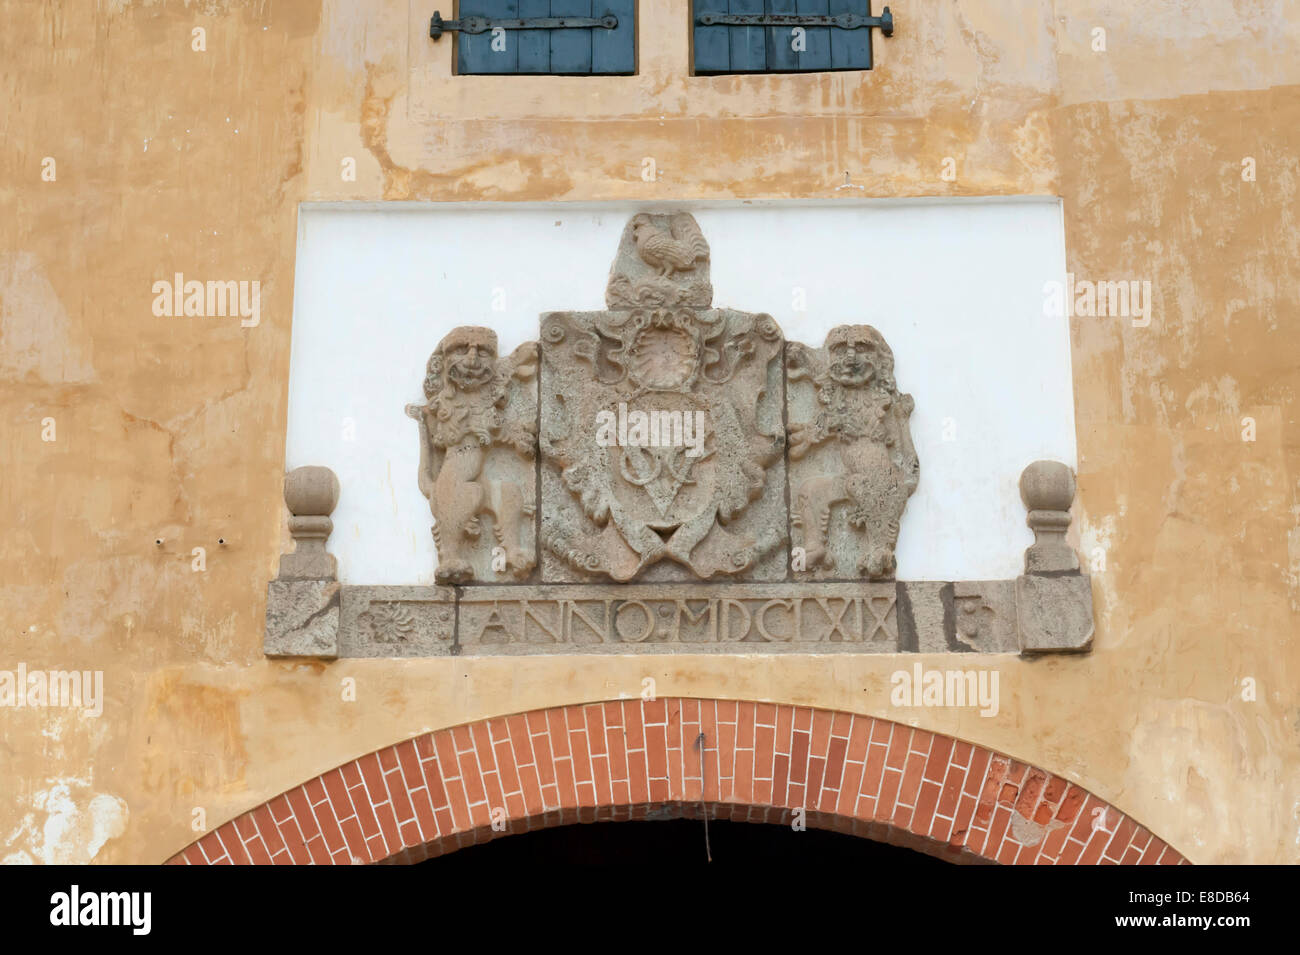 Coat of arms of the Governor of the Dutch East India Company, VOC, on the city walls of Galle, Southern Province, - Stock Image